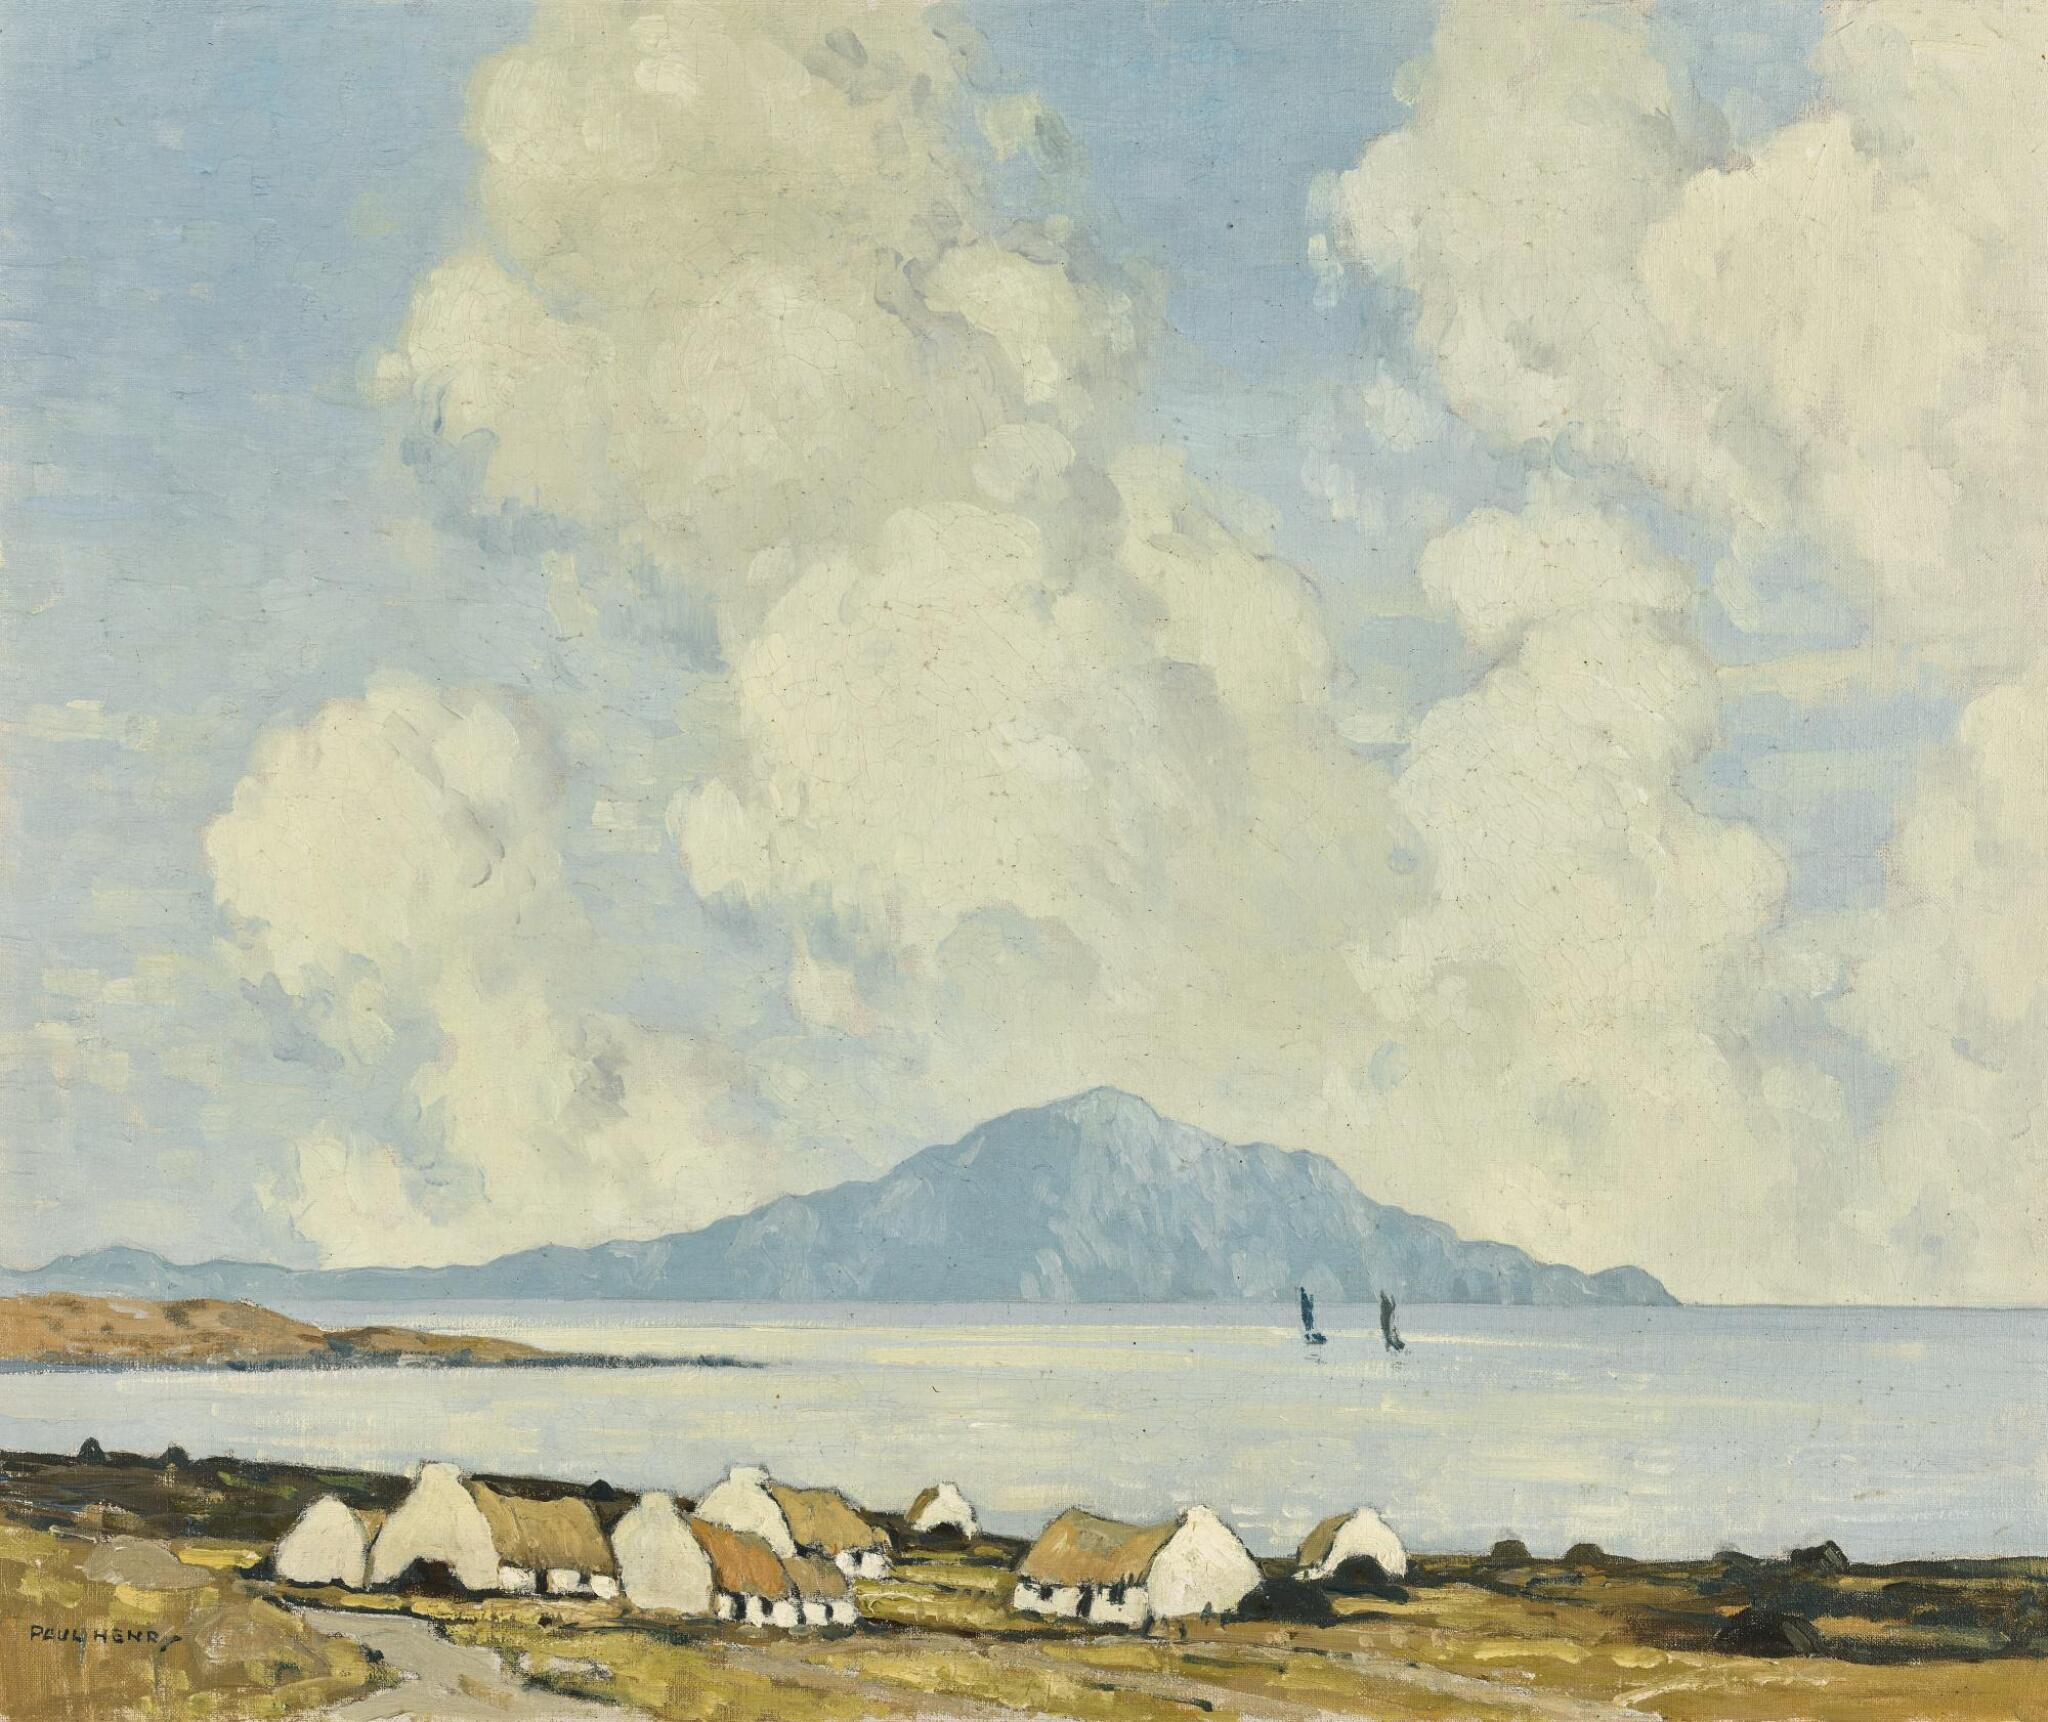 View full screen - View 1 of Lot 57. PAUL HENRY, R.H.A., R.U.A. | CLARE ISLAND FROM ACHILL.